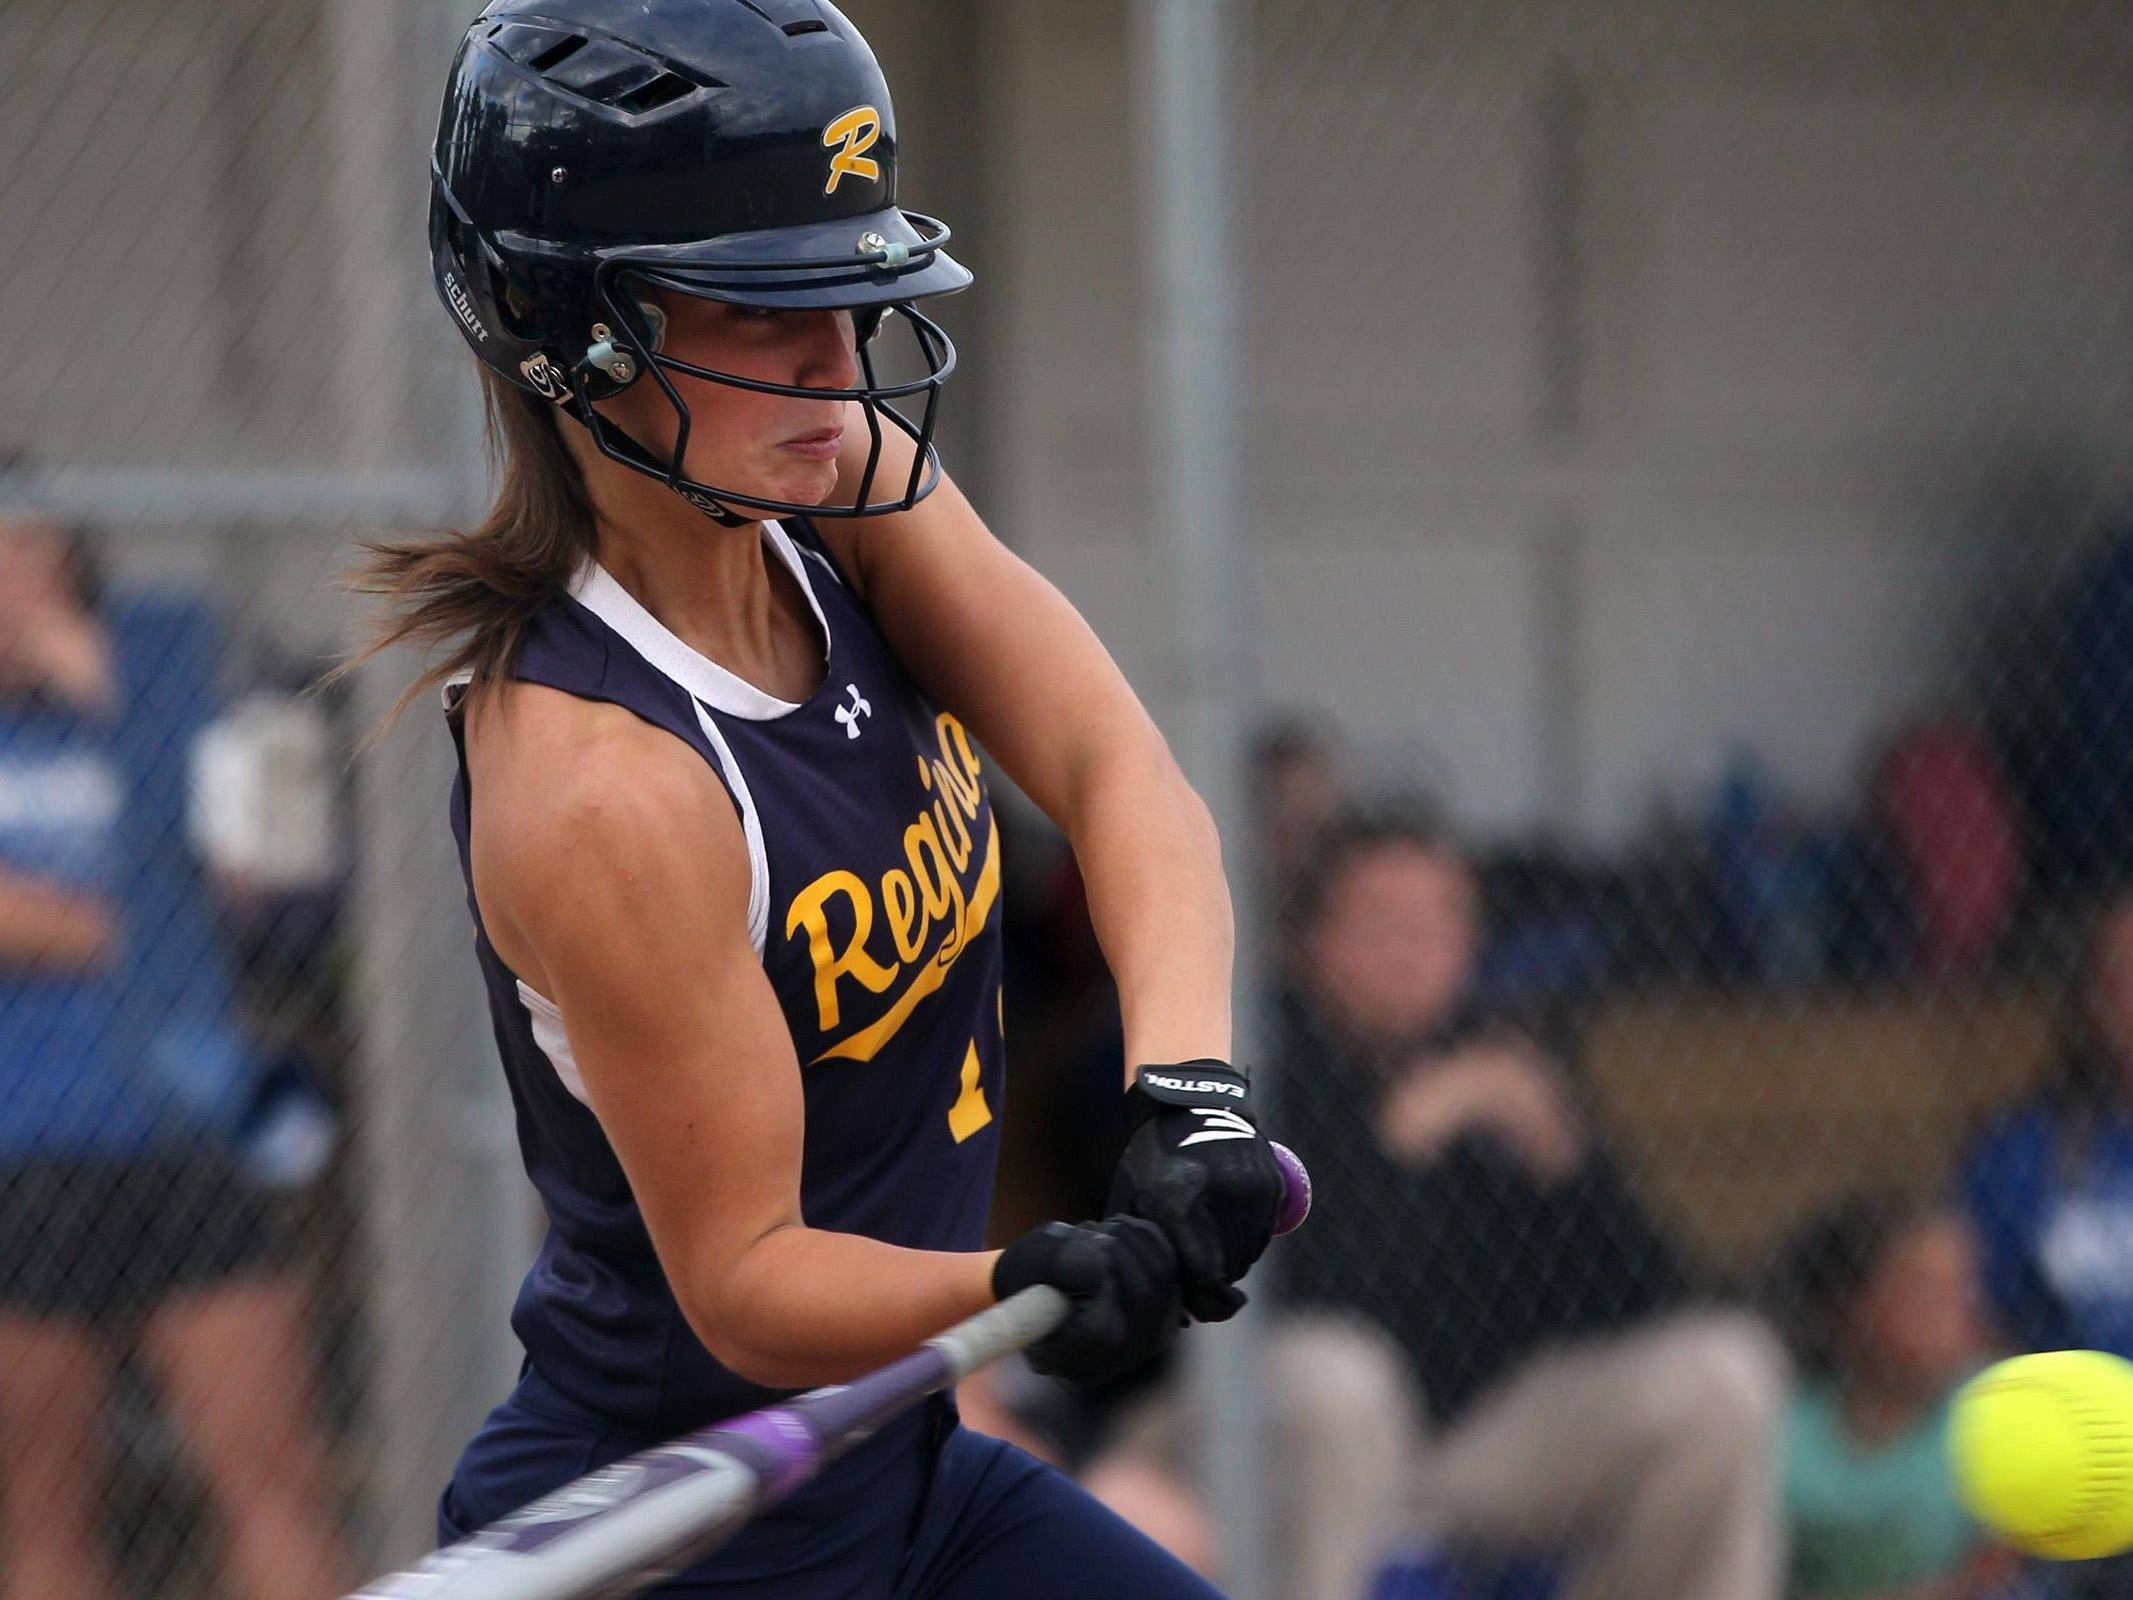 Regina's Cammy Verducci takes a swing during the Regals' game against Columbus on Wednesday, July 8, 2015. David Scrivner / Iowa City Press-Citizen